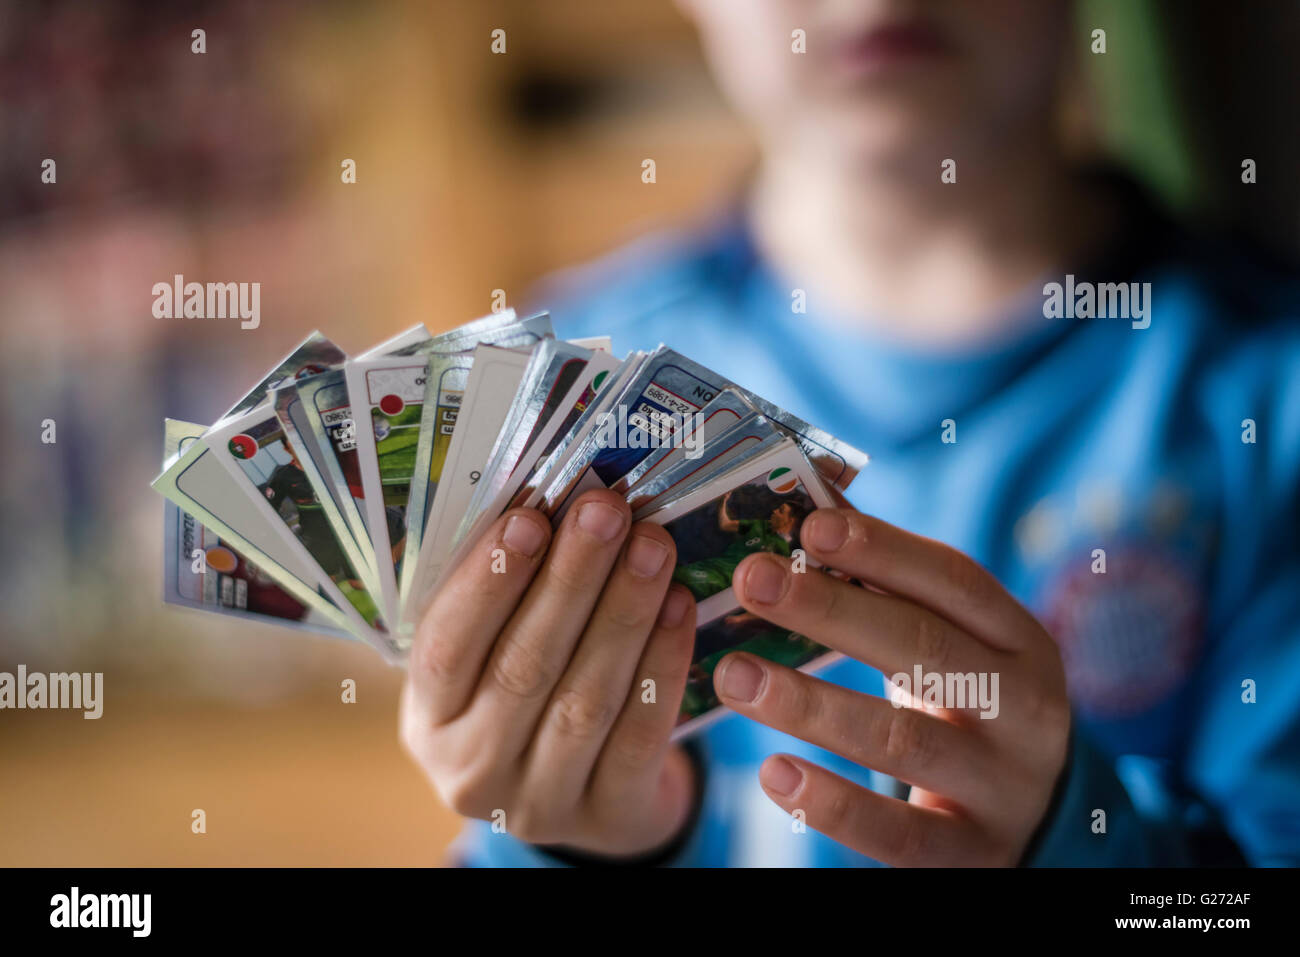 An 8 year old boy is showing his Panini football trading cards before pasting them into his sticker collection scrapbook. - Stock Image